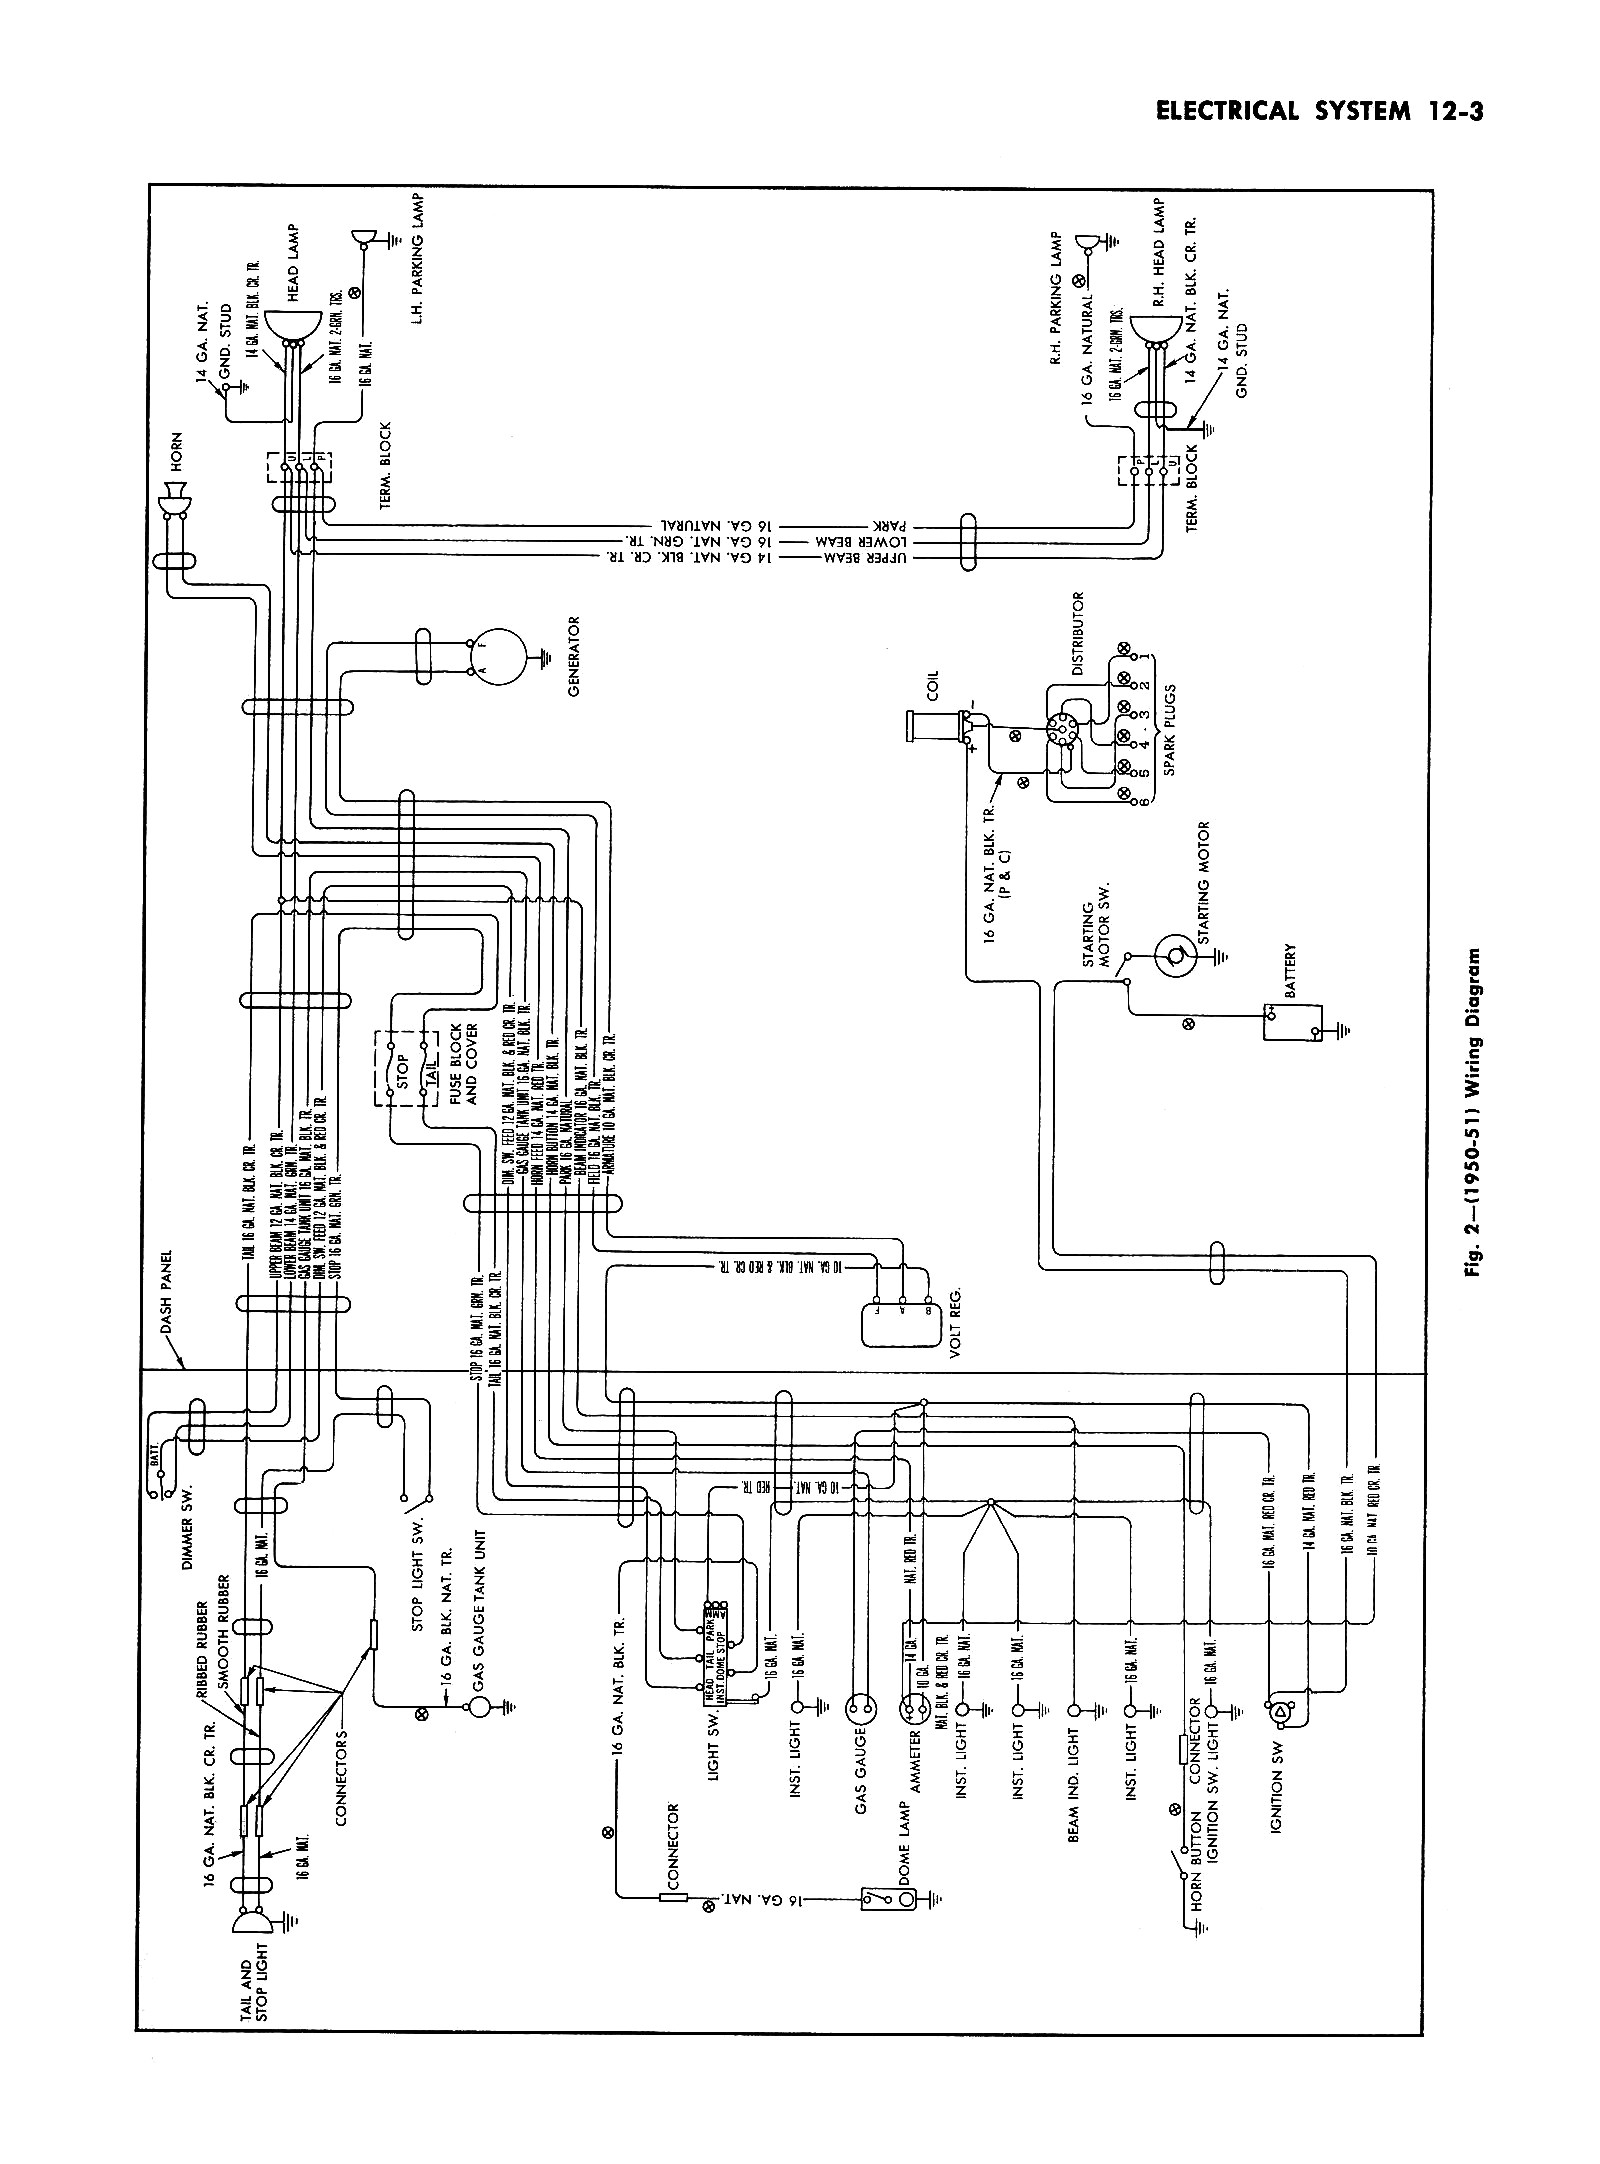 1951 Chevrolet Wiring Diagram List Of Schematic Circuit Diagram \u2022 1947  Ford Wiring Diagram 1951 Ford F5 Wiring Diagram